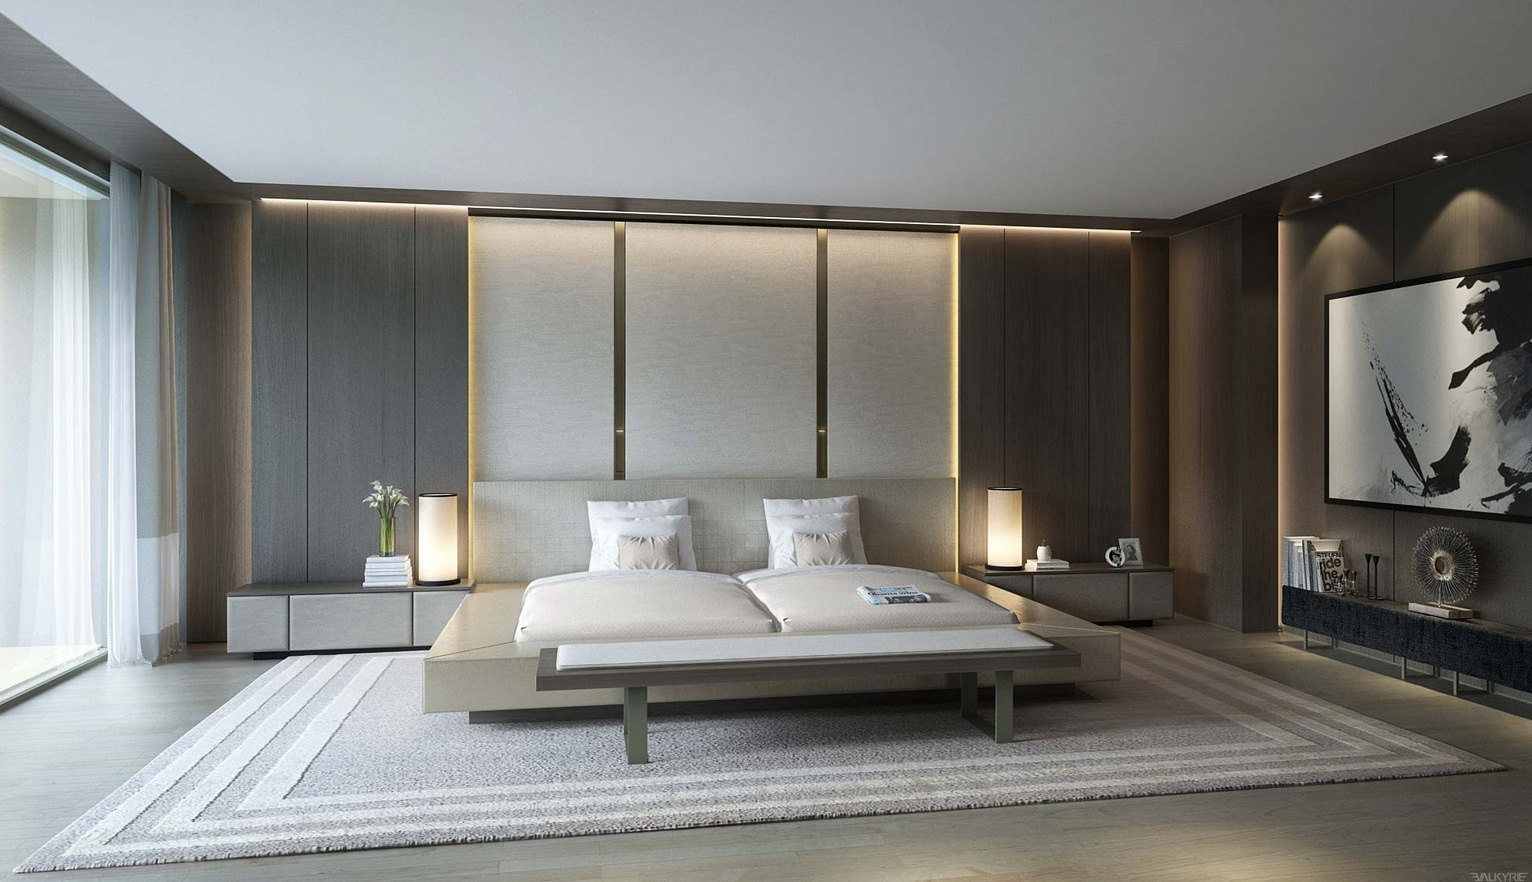 21 cool bedrooms for clean and simple design inspiration for Interior styles